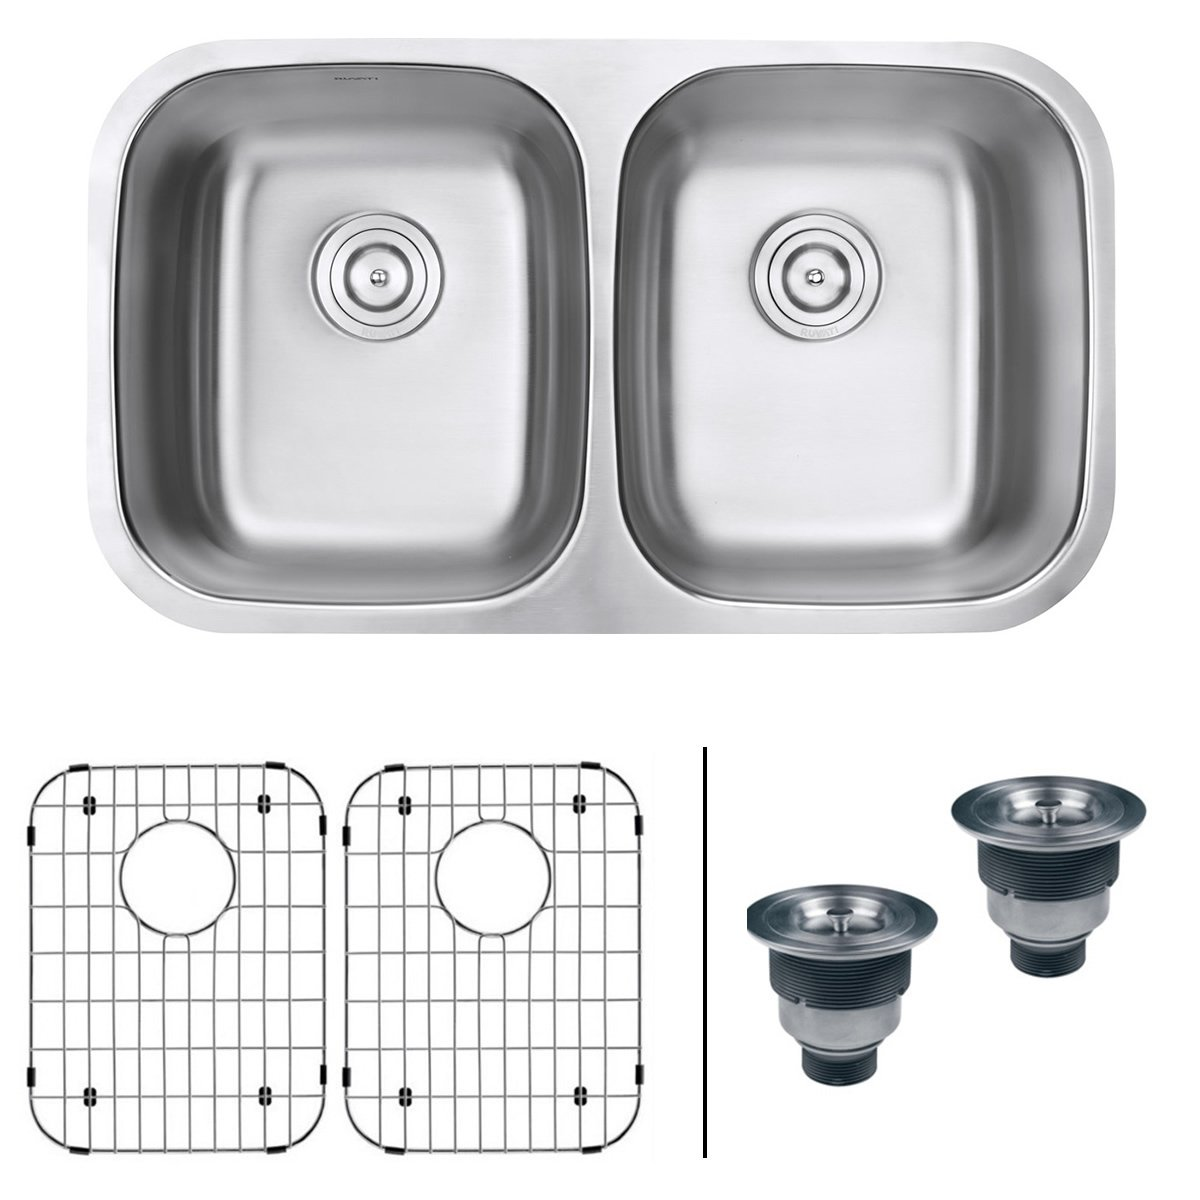 Ruvati RVM4300 Undermount 16 Gauge 32'' Kitchen Sink Double Bowl, Stainless Steel by Ruvati